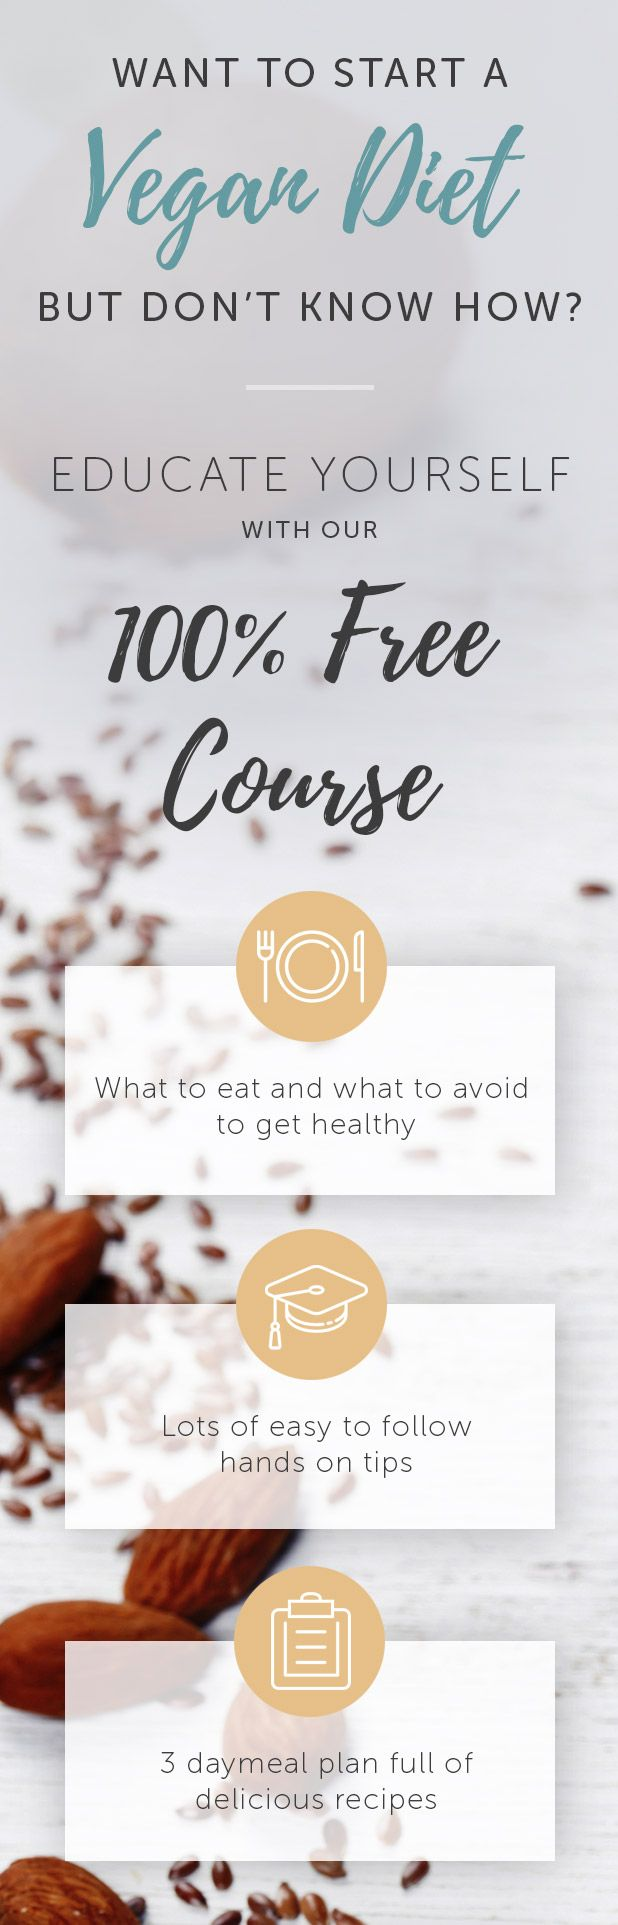 Want to start a #vegan #diet? We've got you covered. Learn everything from healthy staple foods to delicious & convenient treats, reasons for veganism, how to respond to questions & much more in our FREE course. There's also a meal plan with easy, delicious #recipes included. Join now :)